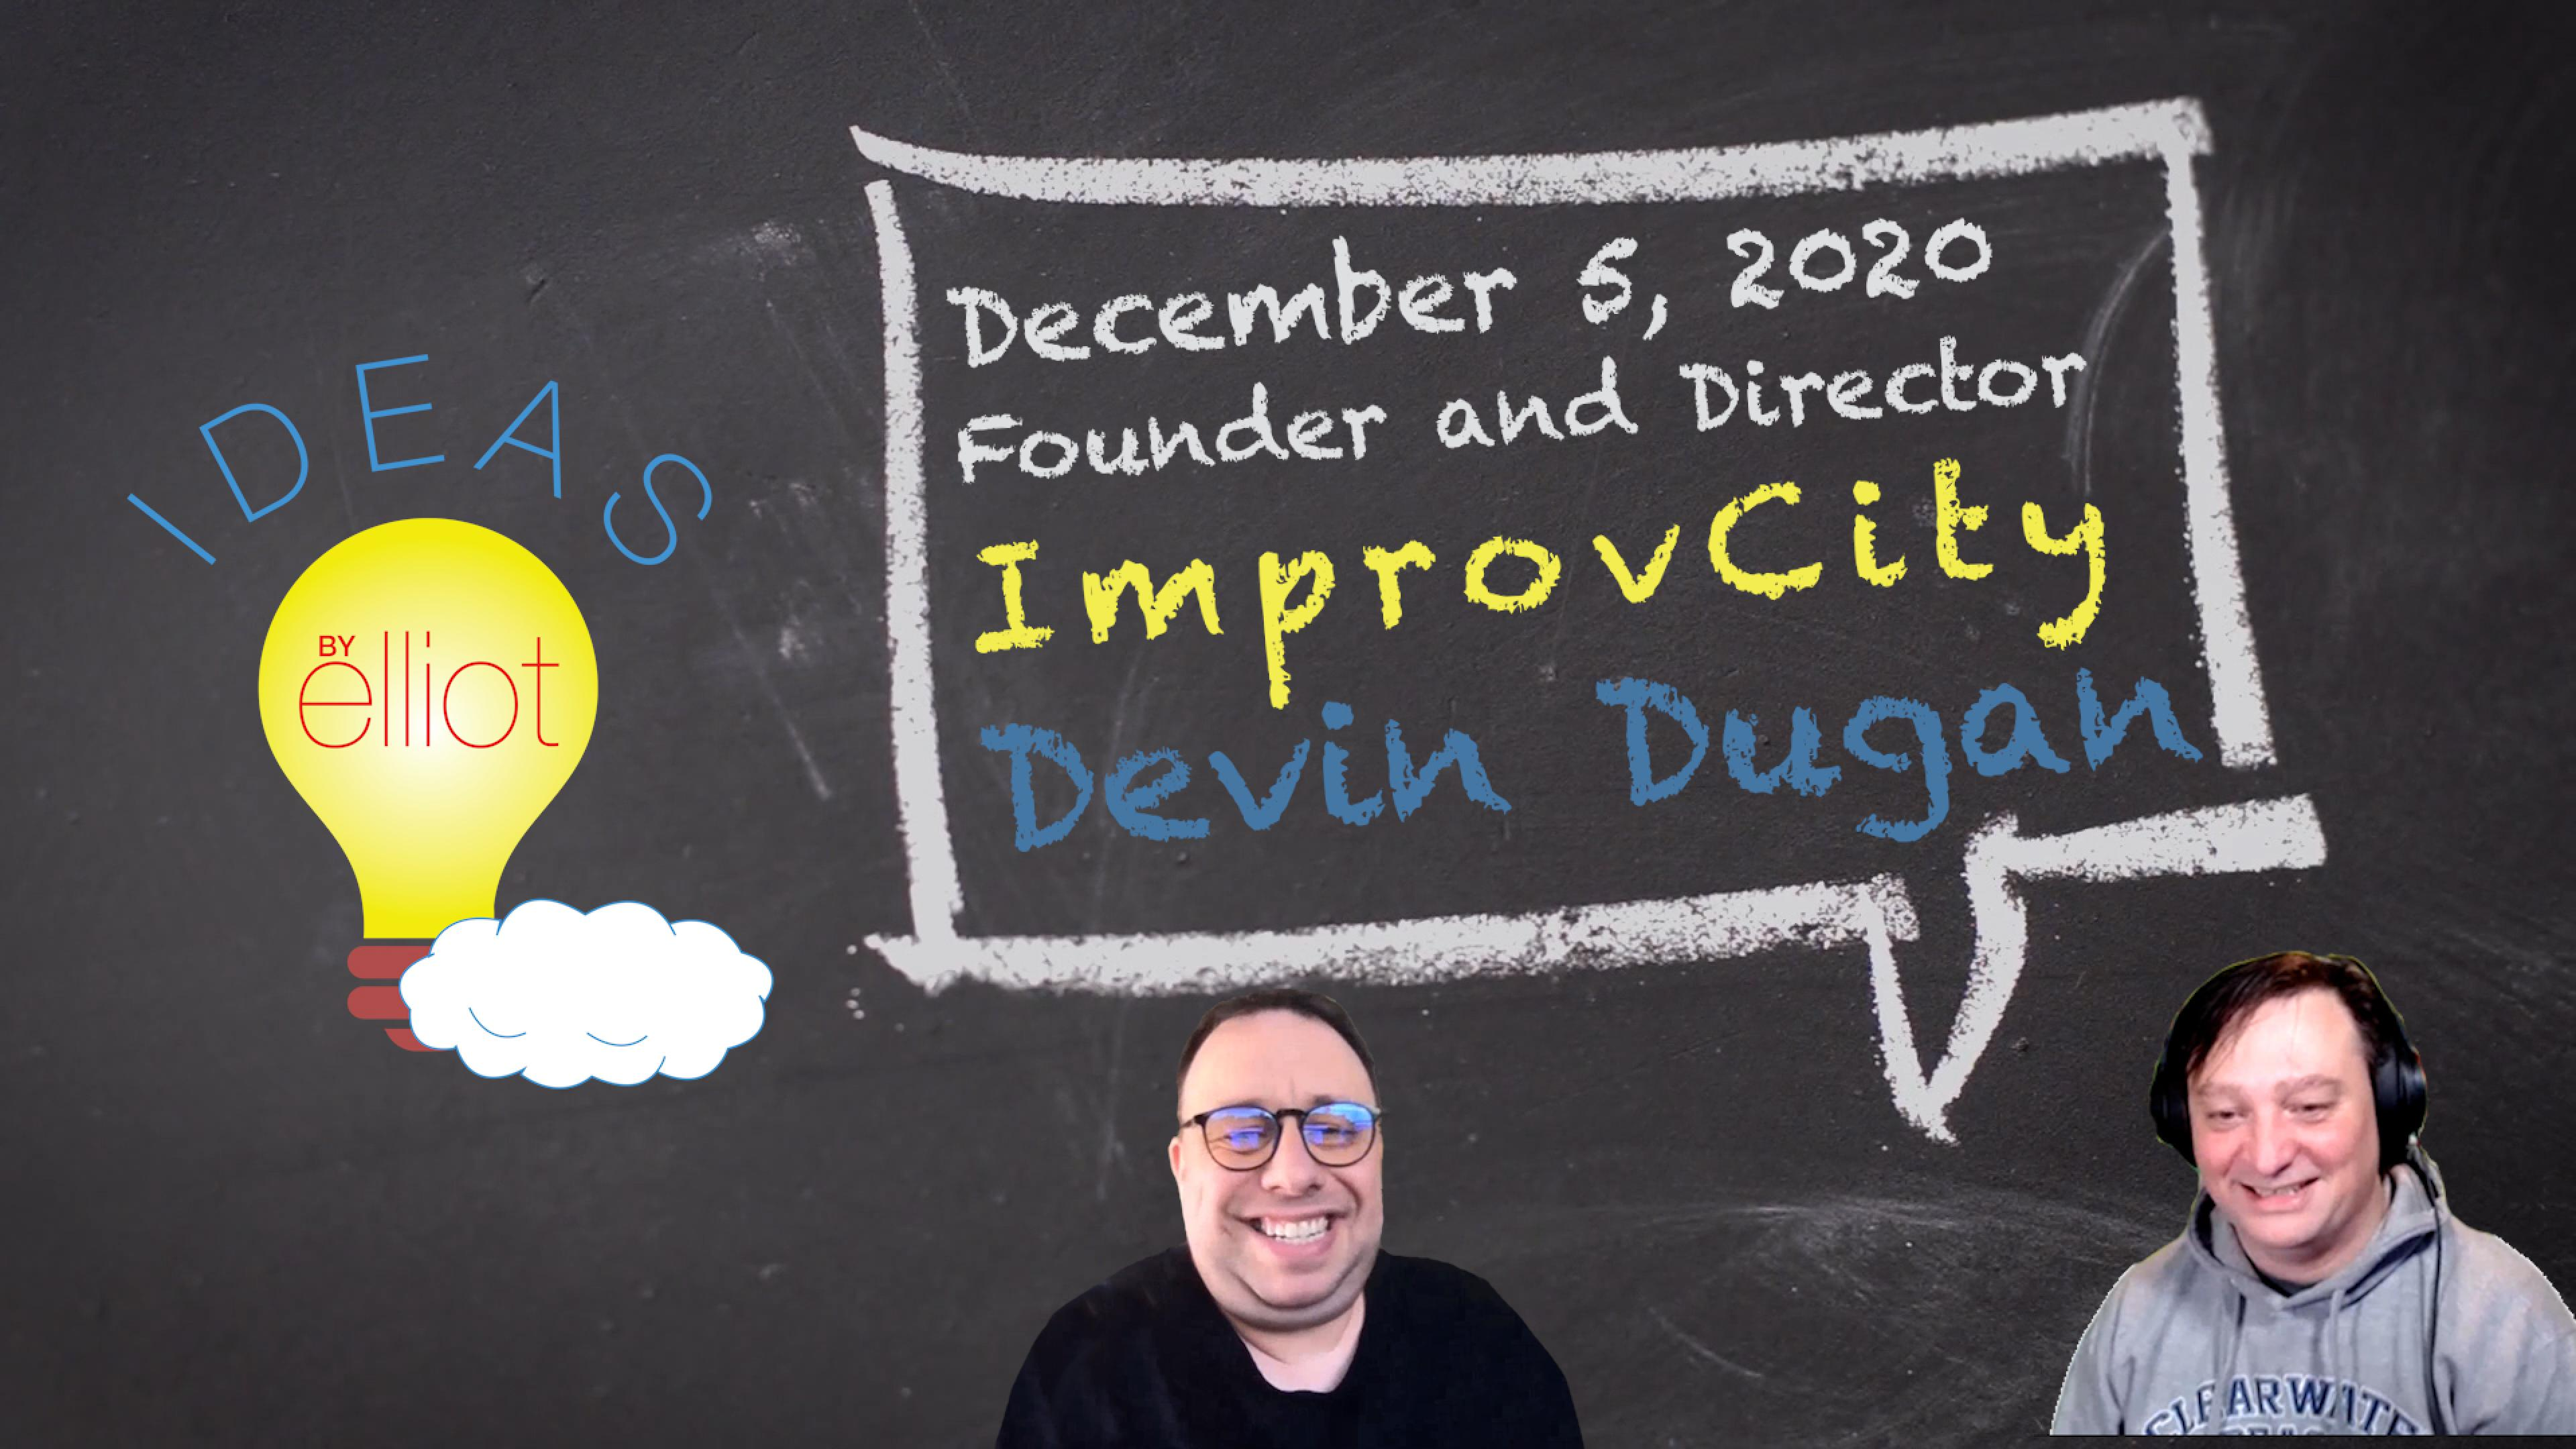 Entrepreneur Founder and Director of ImprovCity Comedy in Orange County, California: Devin Dugan